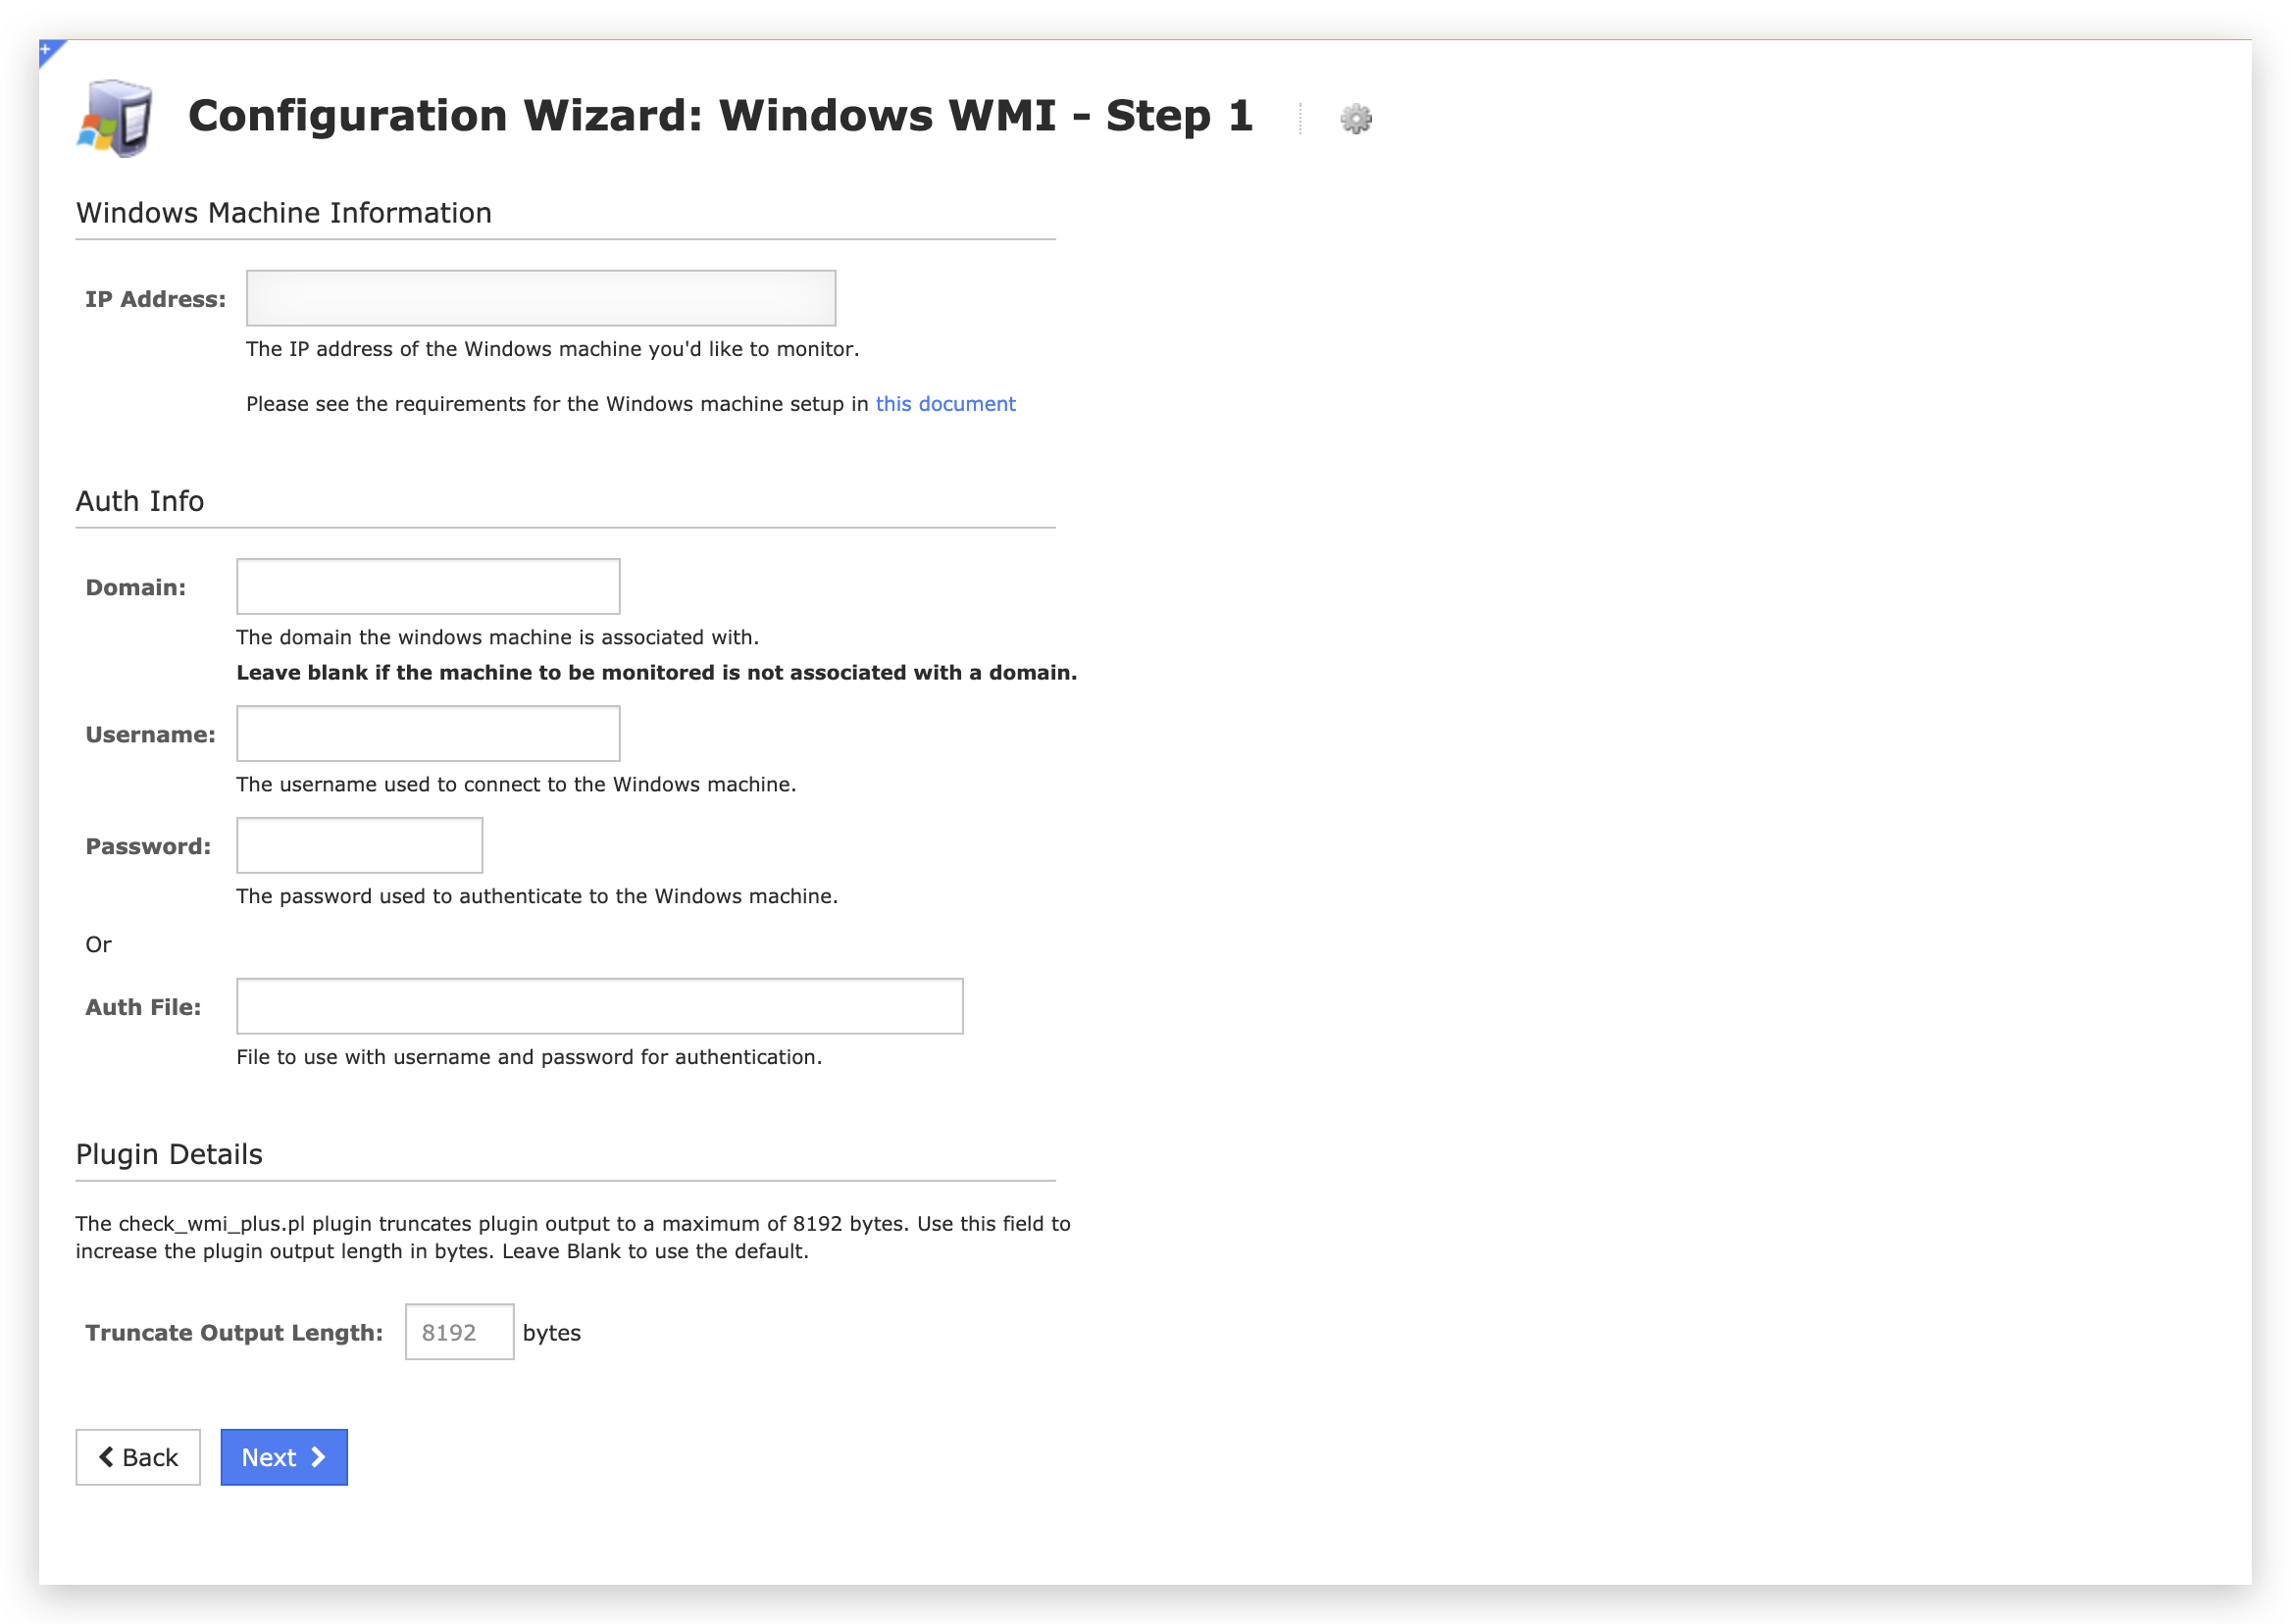 The image depicts a screenshot of Step 1 in the Configuration Wizard: Windows WMI workflow